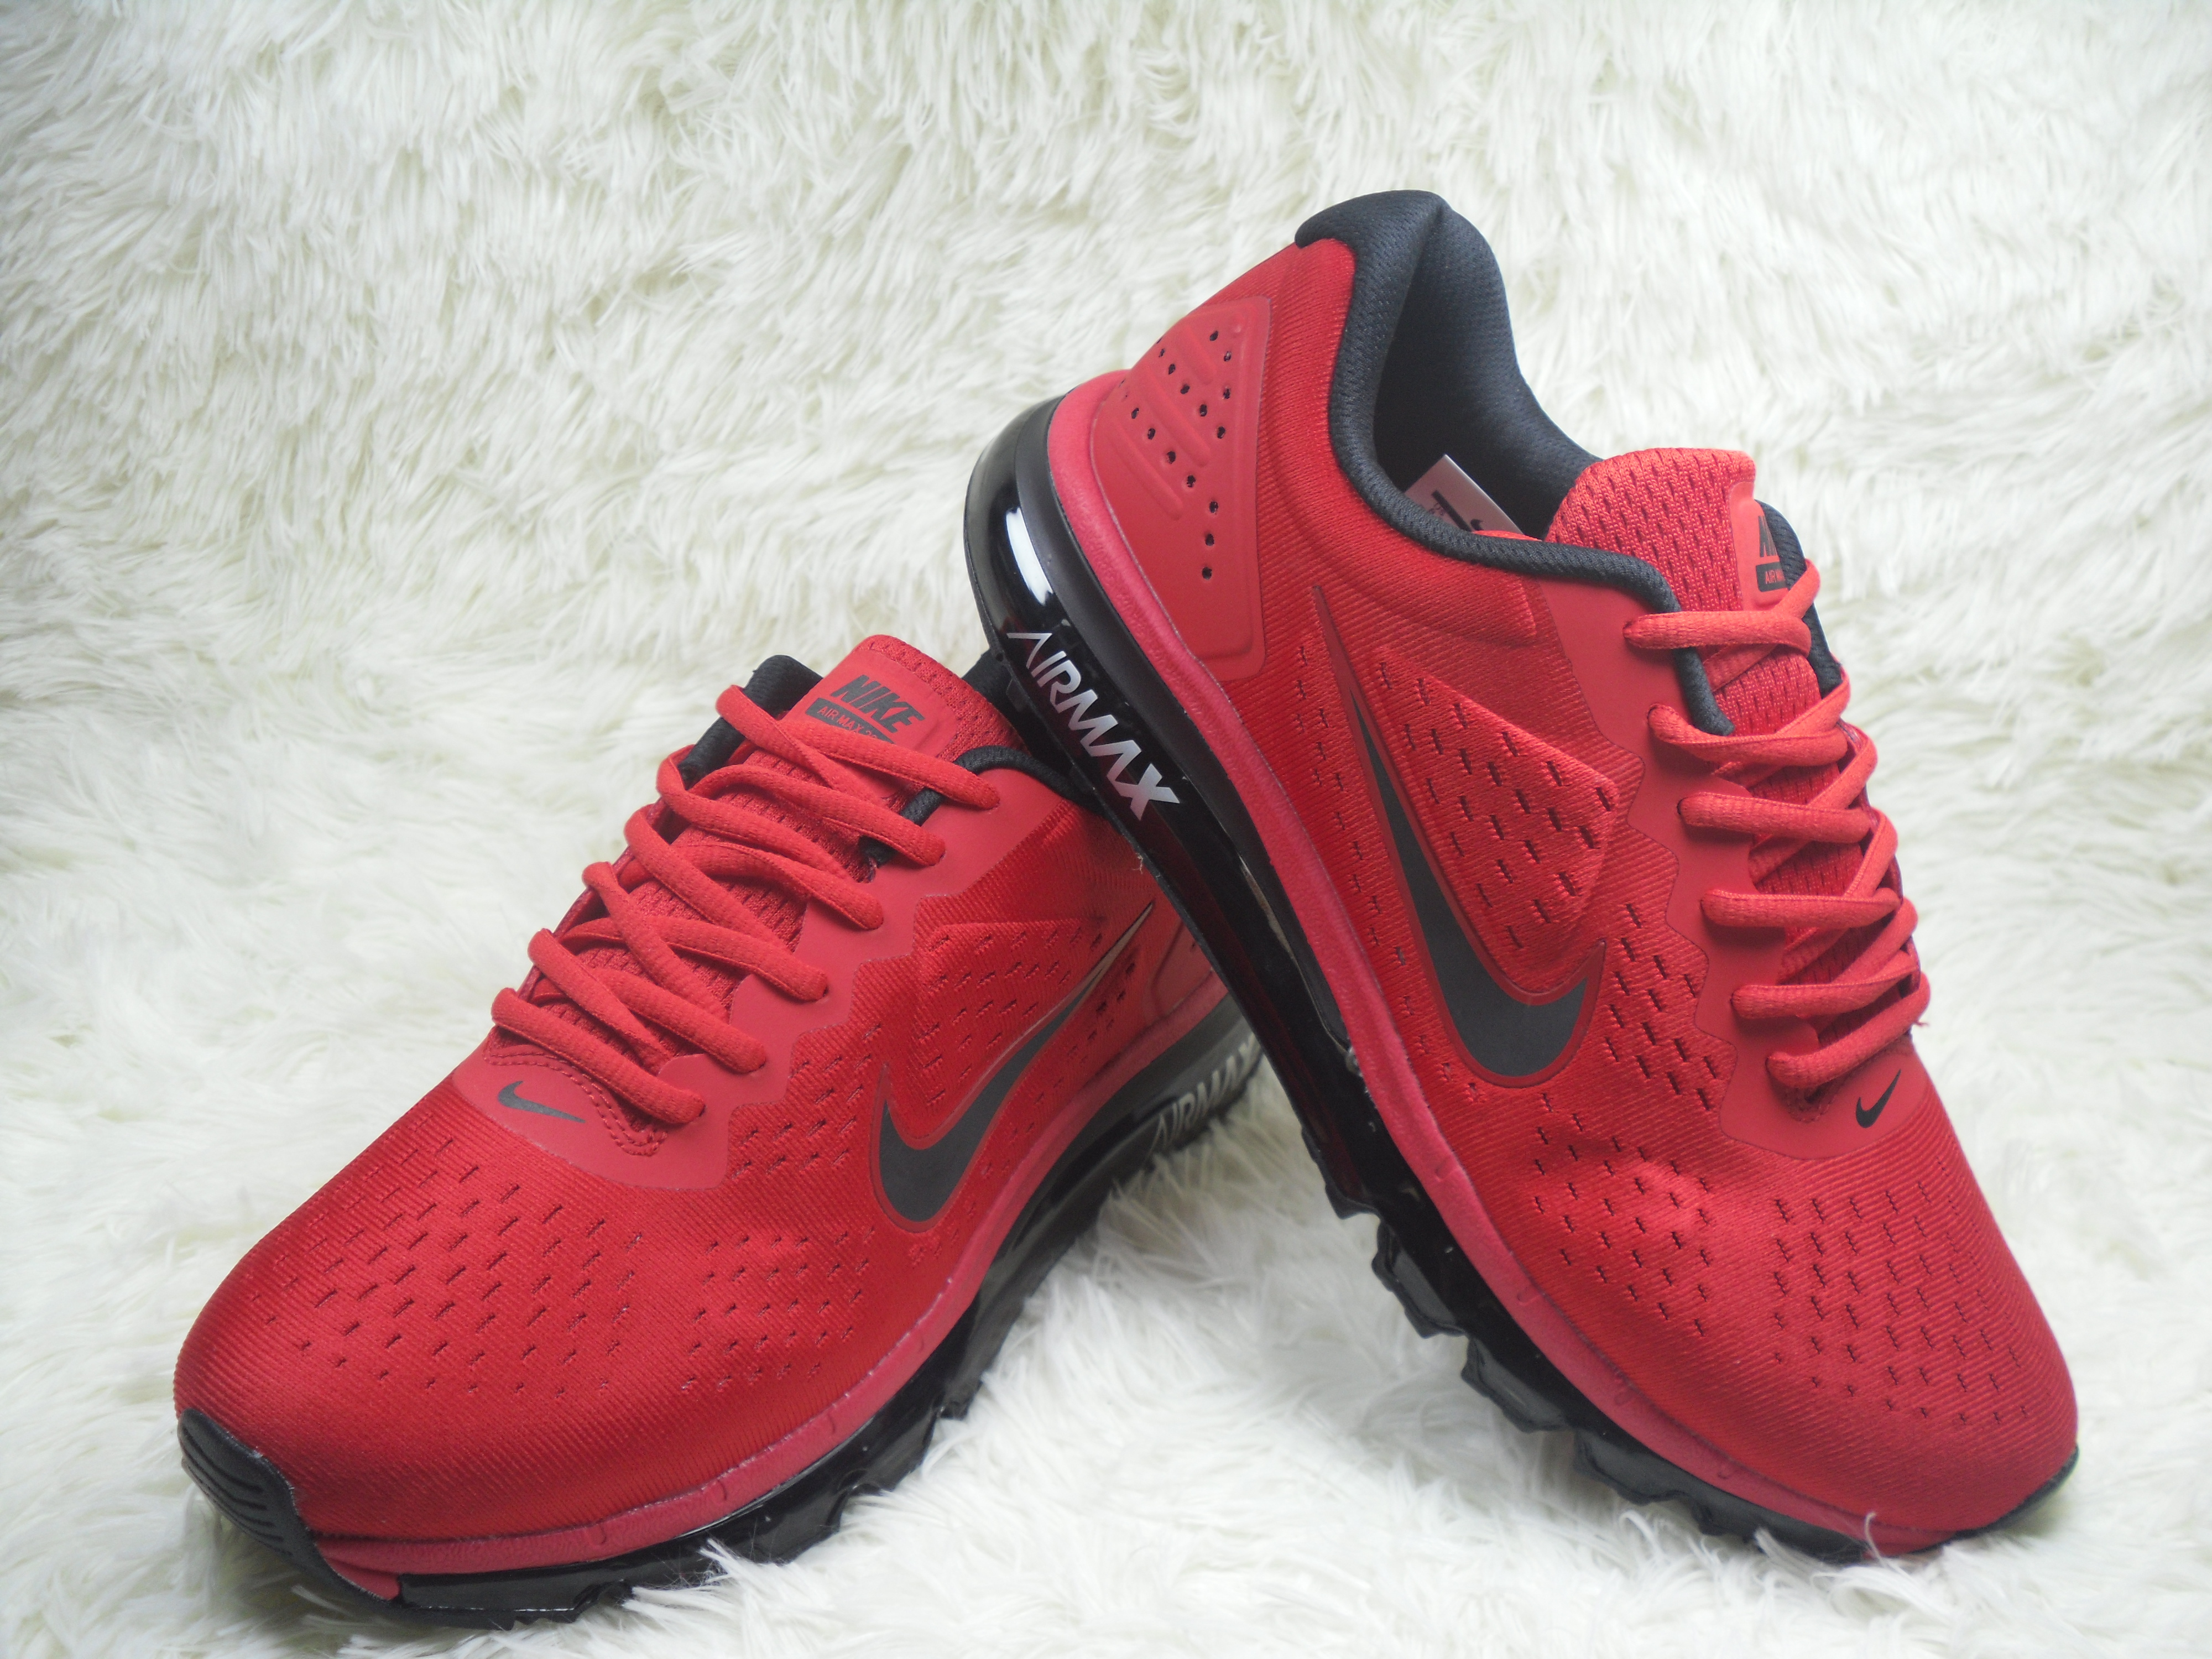 New Nike Air Max 2019 Red Black